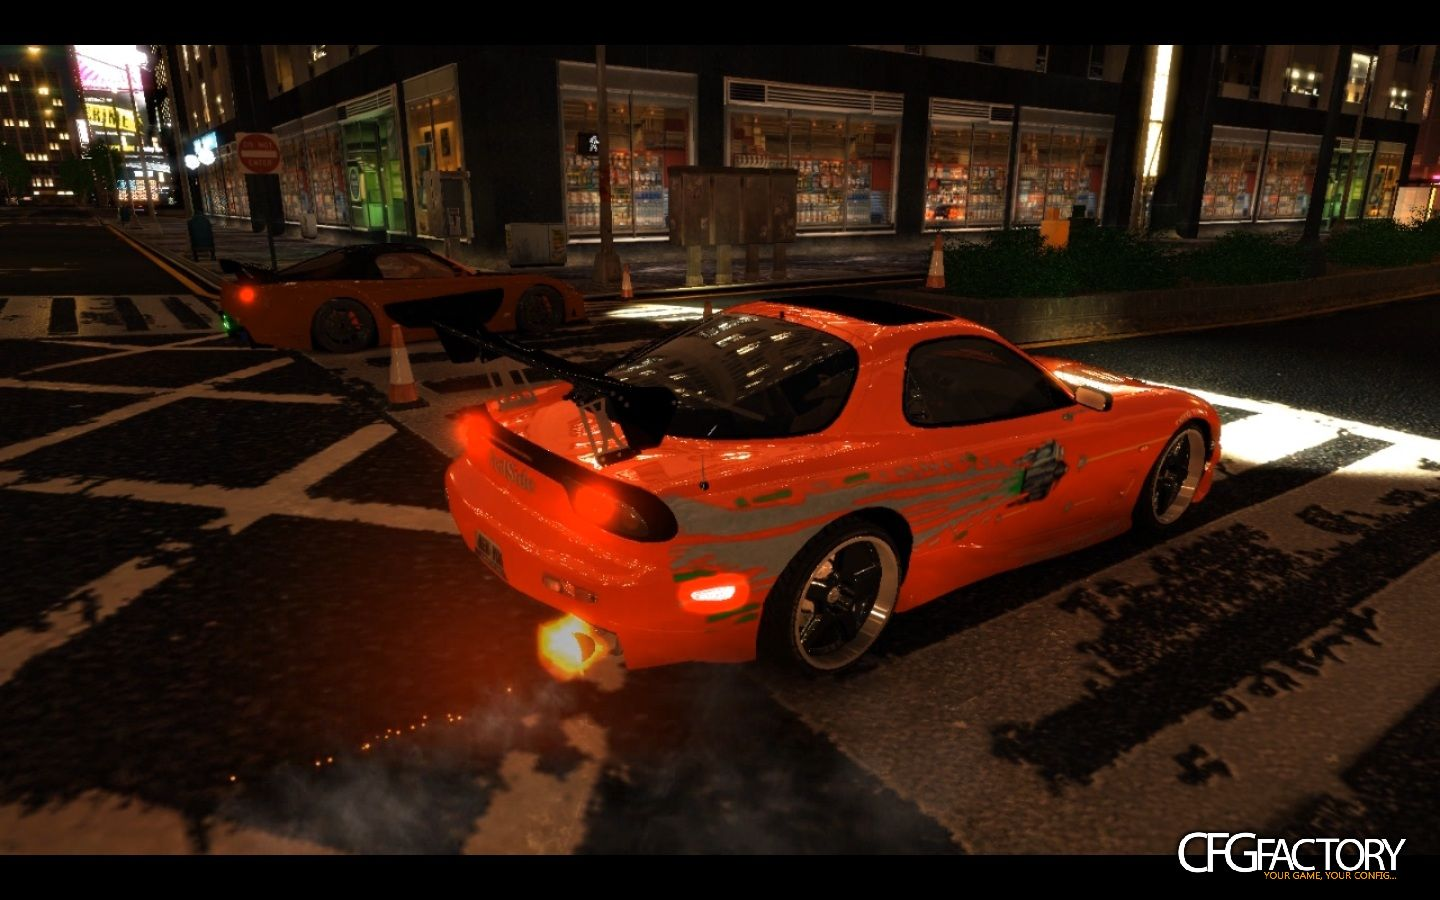 mazda rx7 fast and furious 6. fast and furious mazda rx7 paintjob rx7 6